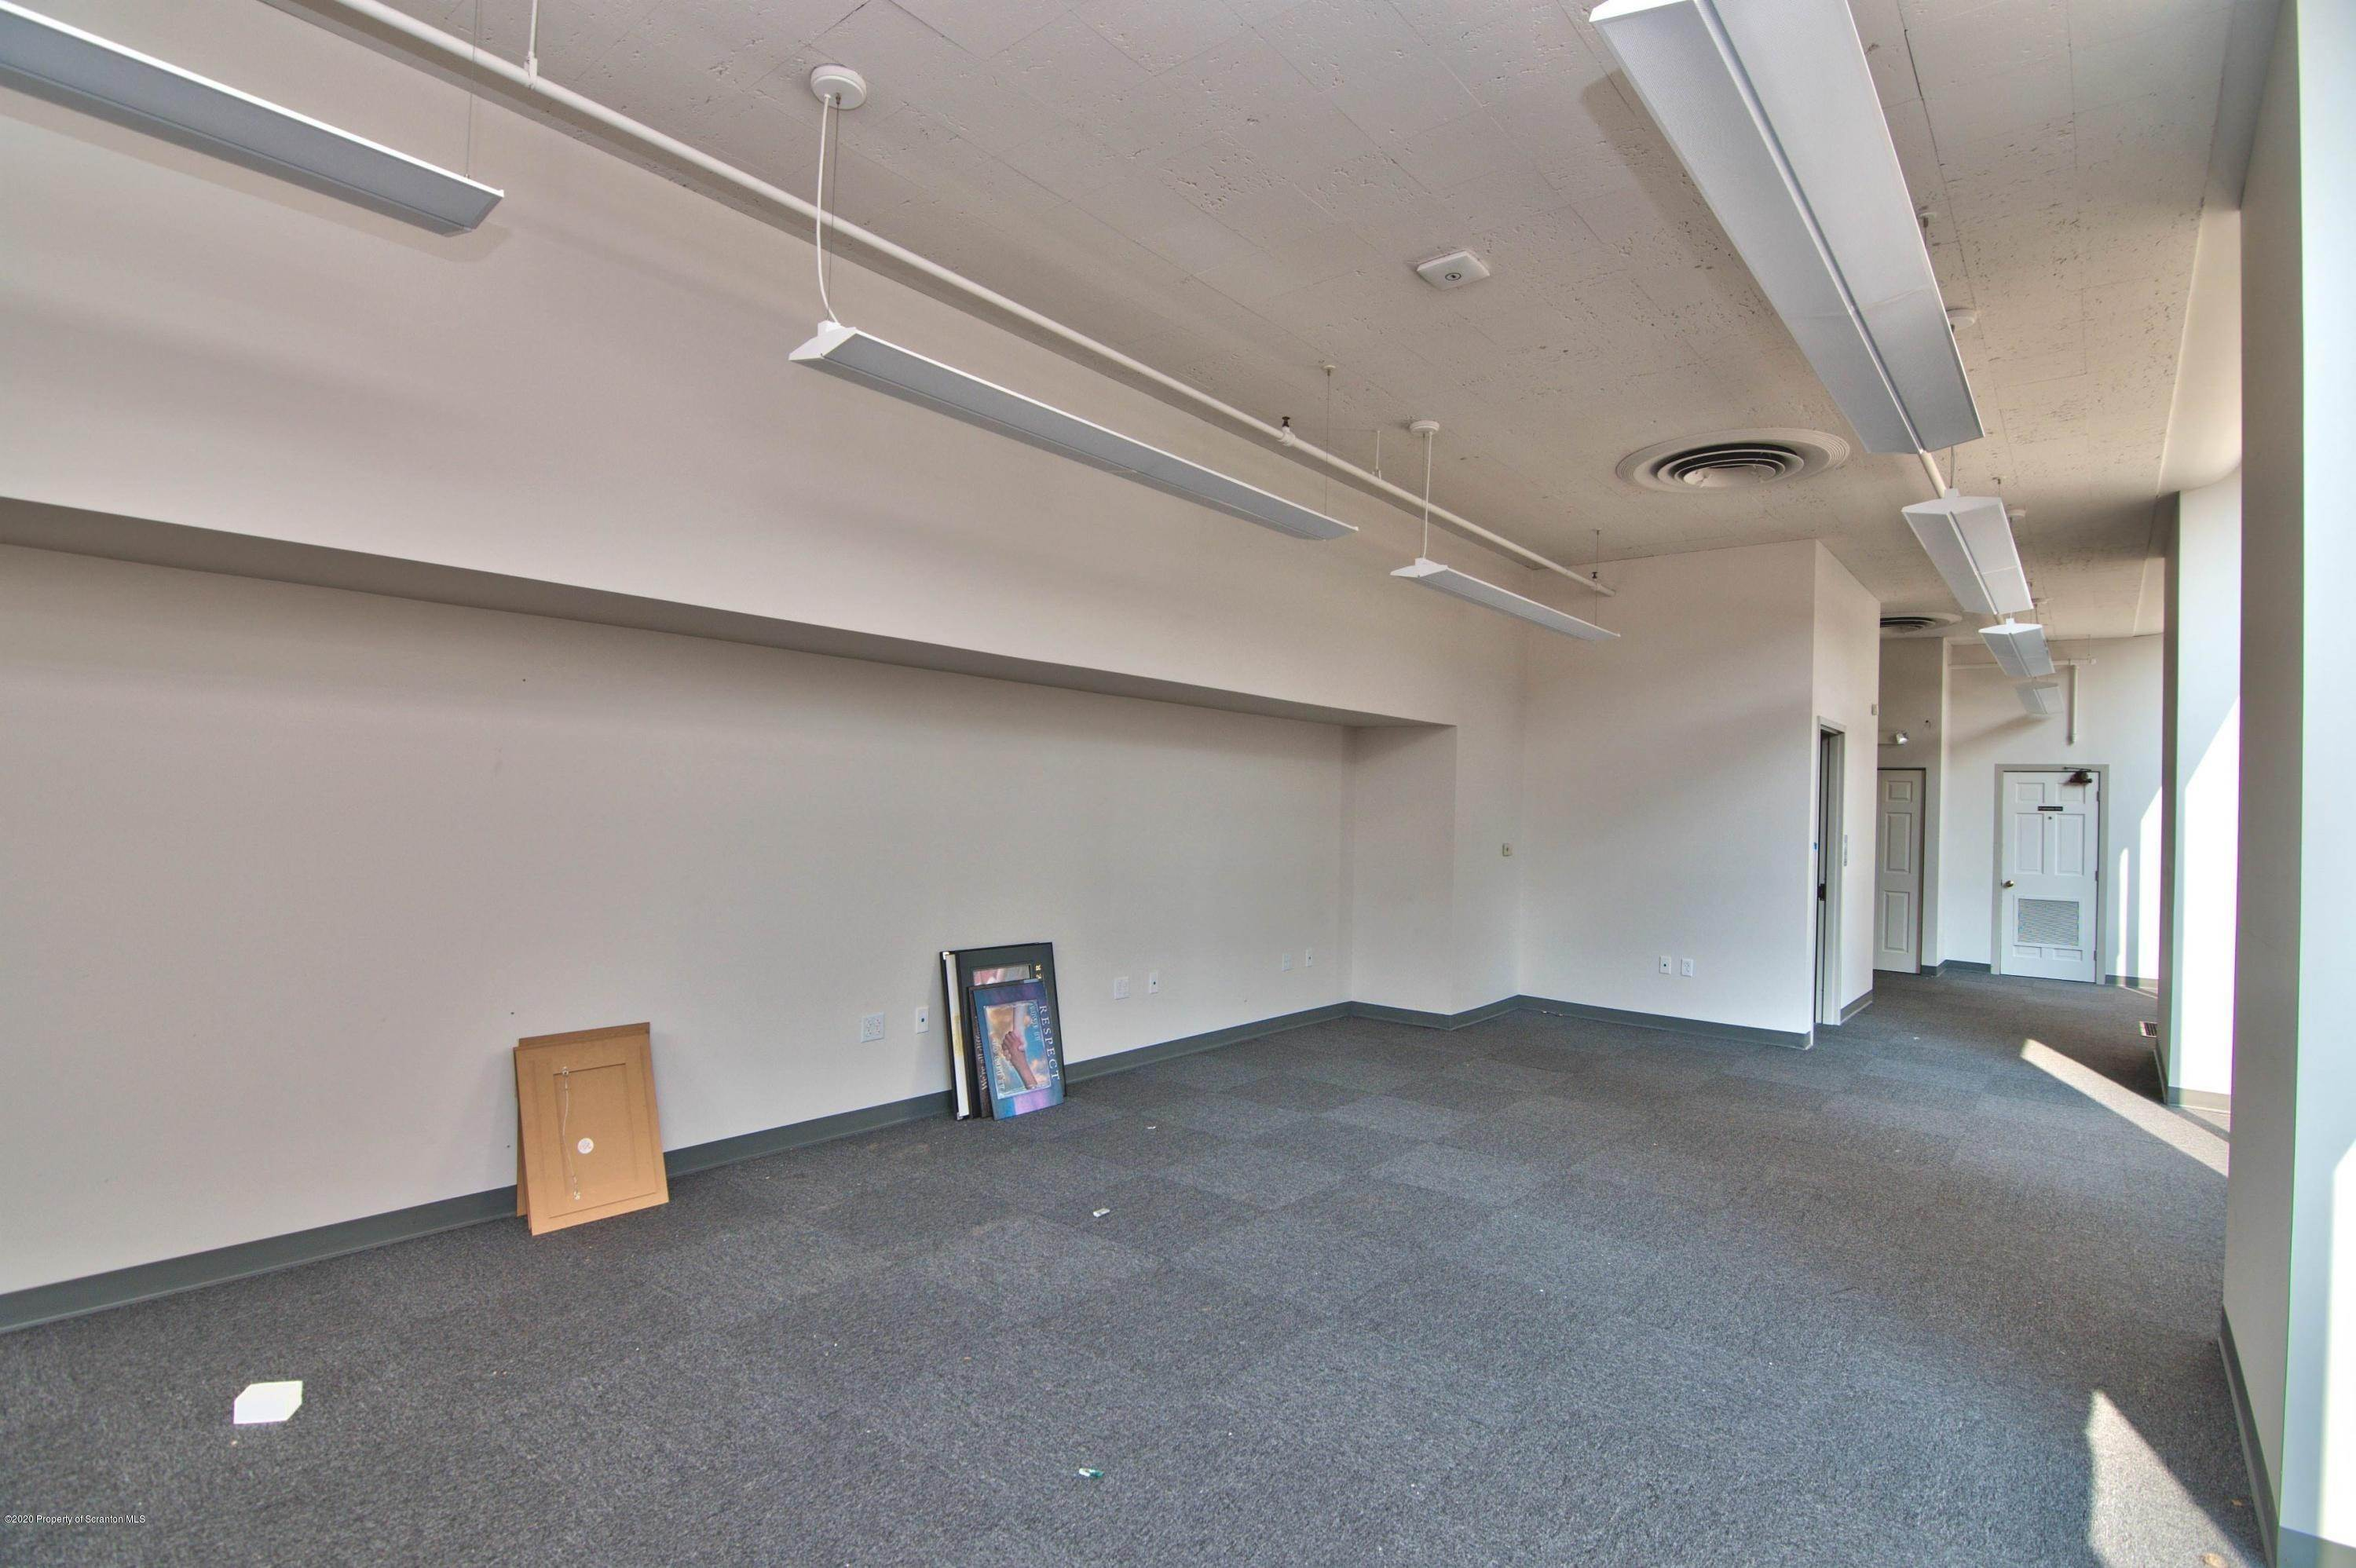 3. Commercial for Rent at 139 Wyoming Ave Scranton, Pennsylvania 18503 United States